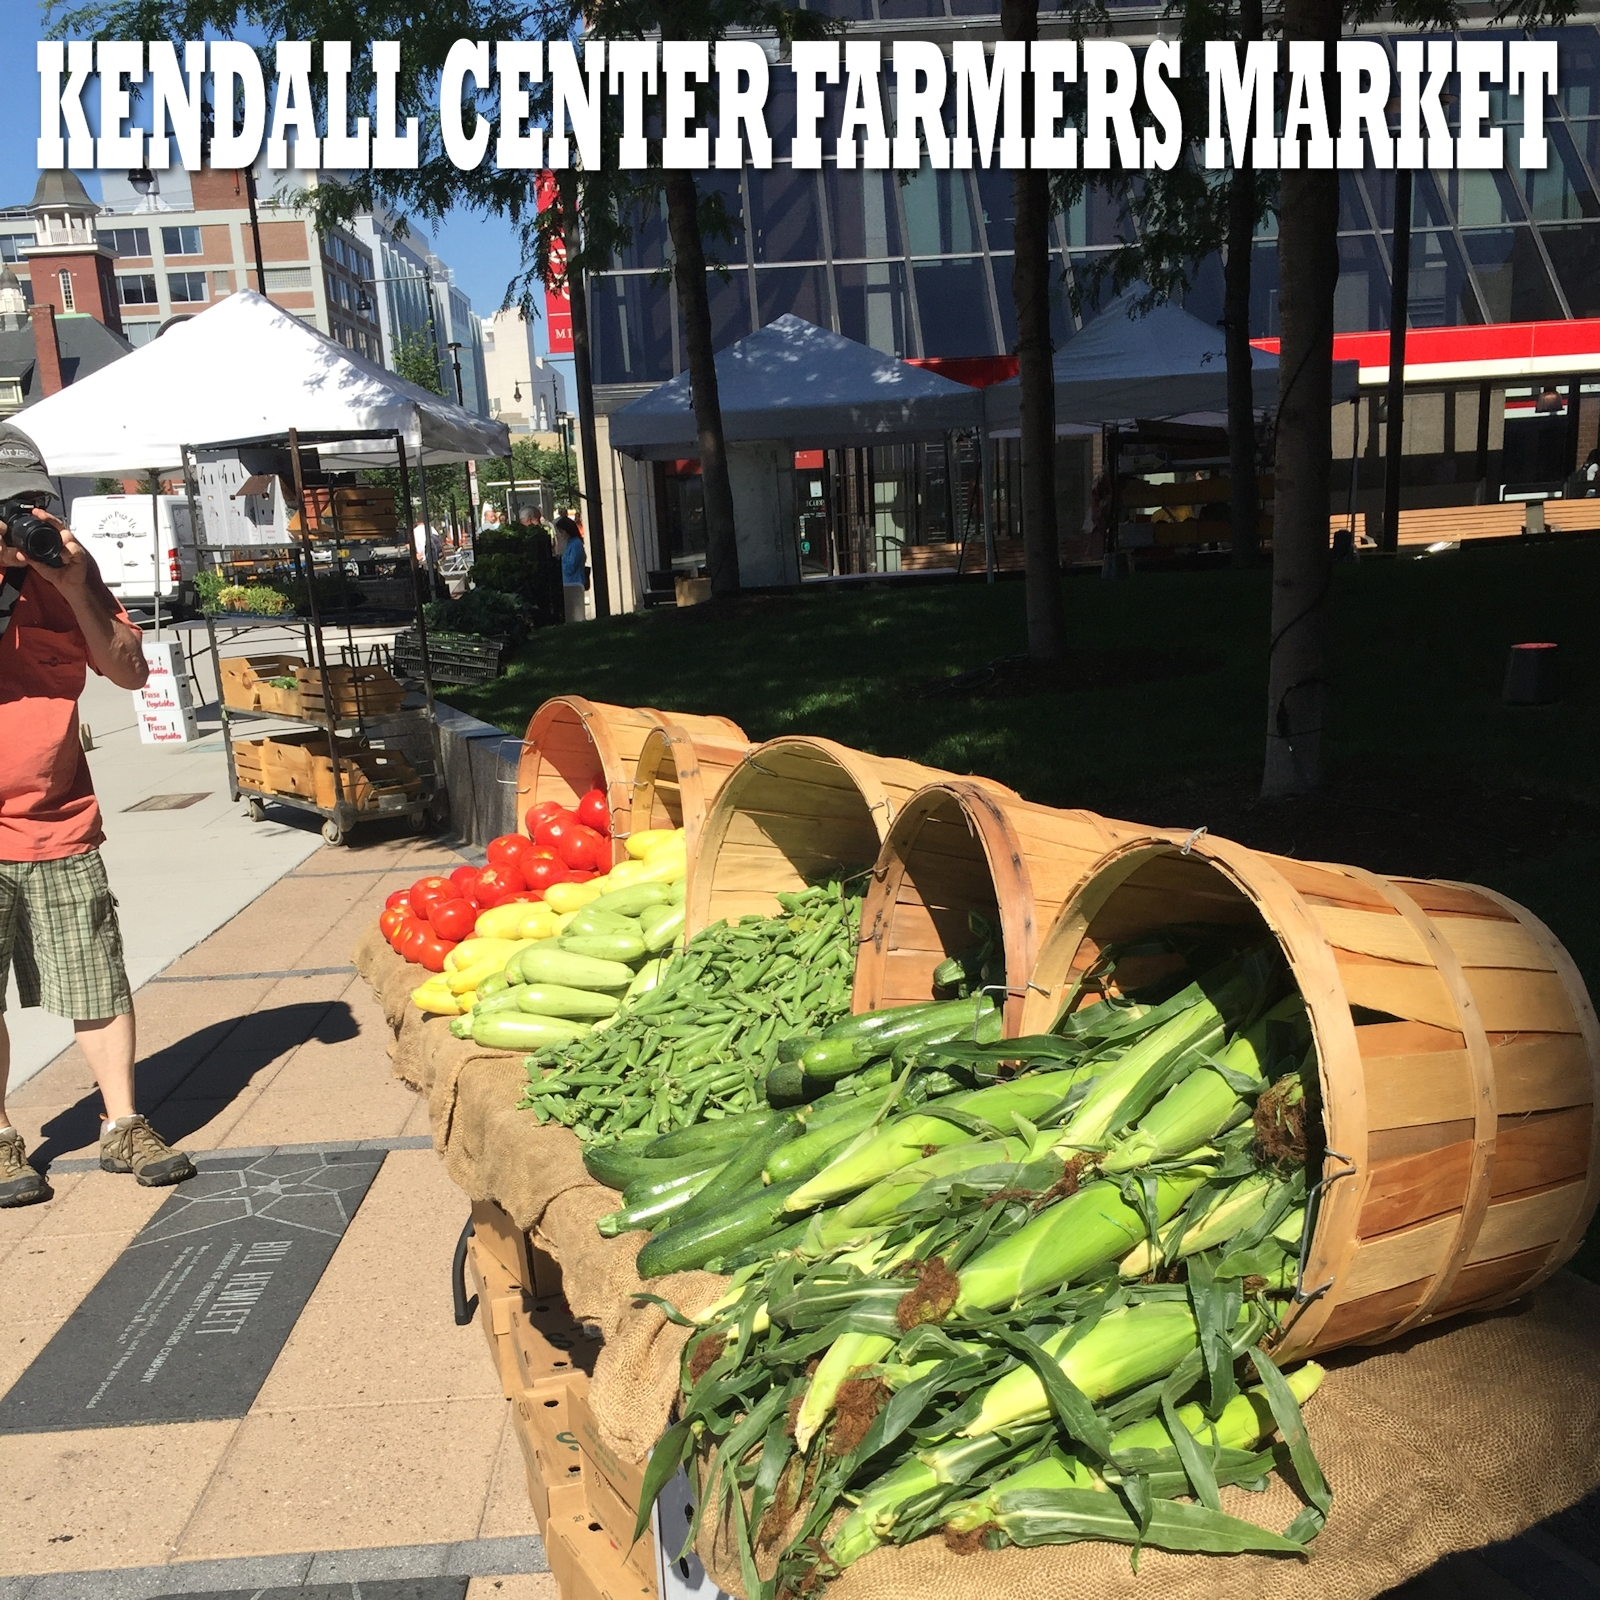 Kendall Center Farmers Market - Cambridge MA - Events Calendar